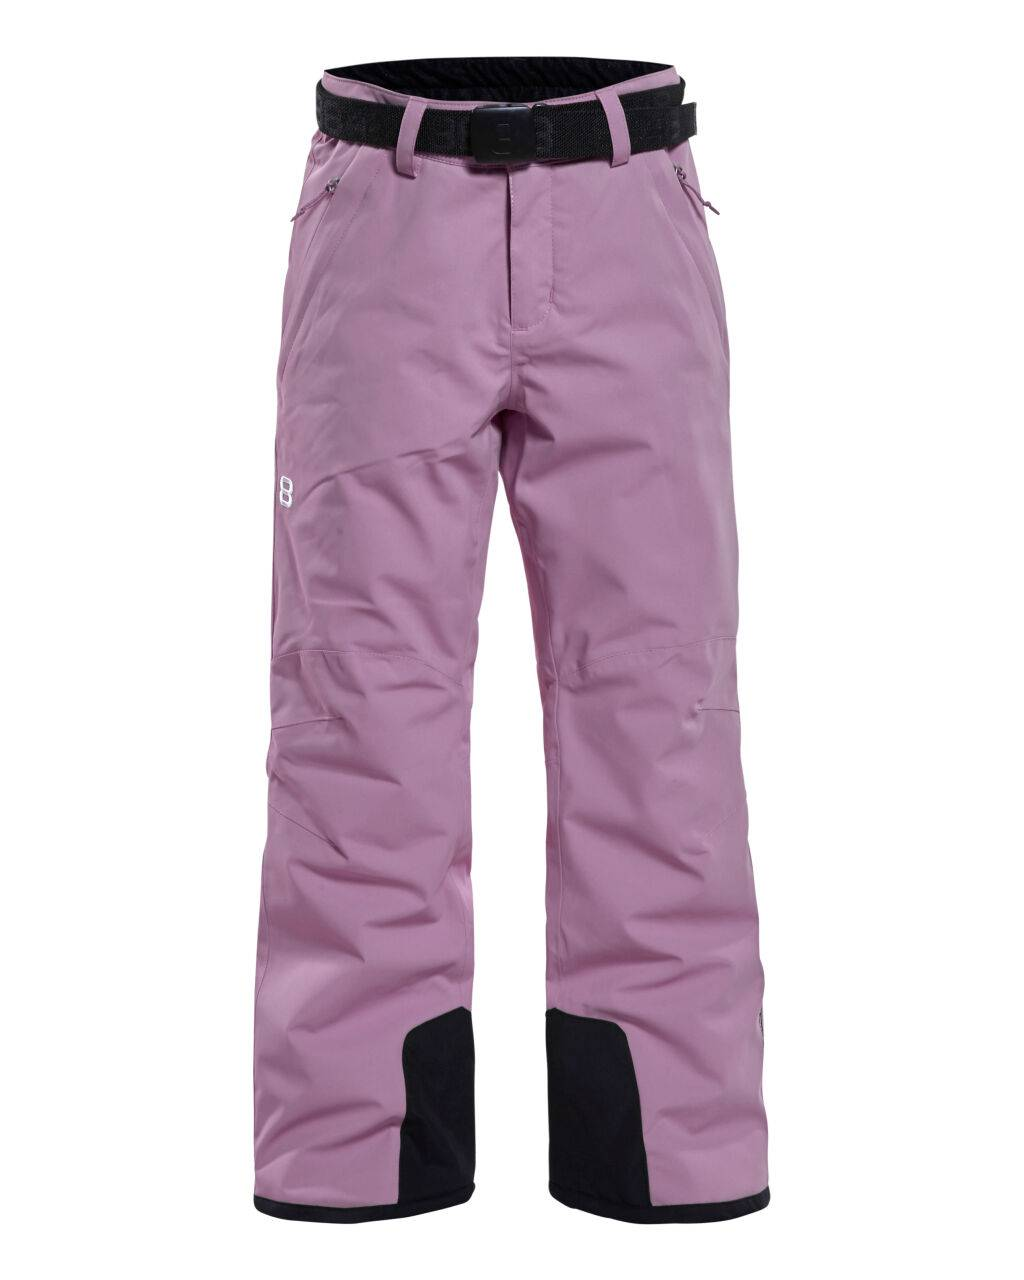 8848 Altitude Grace pants jr Lasten toppahousut